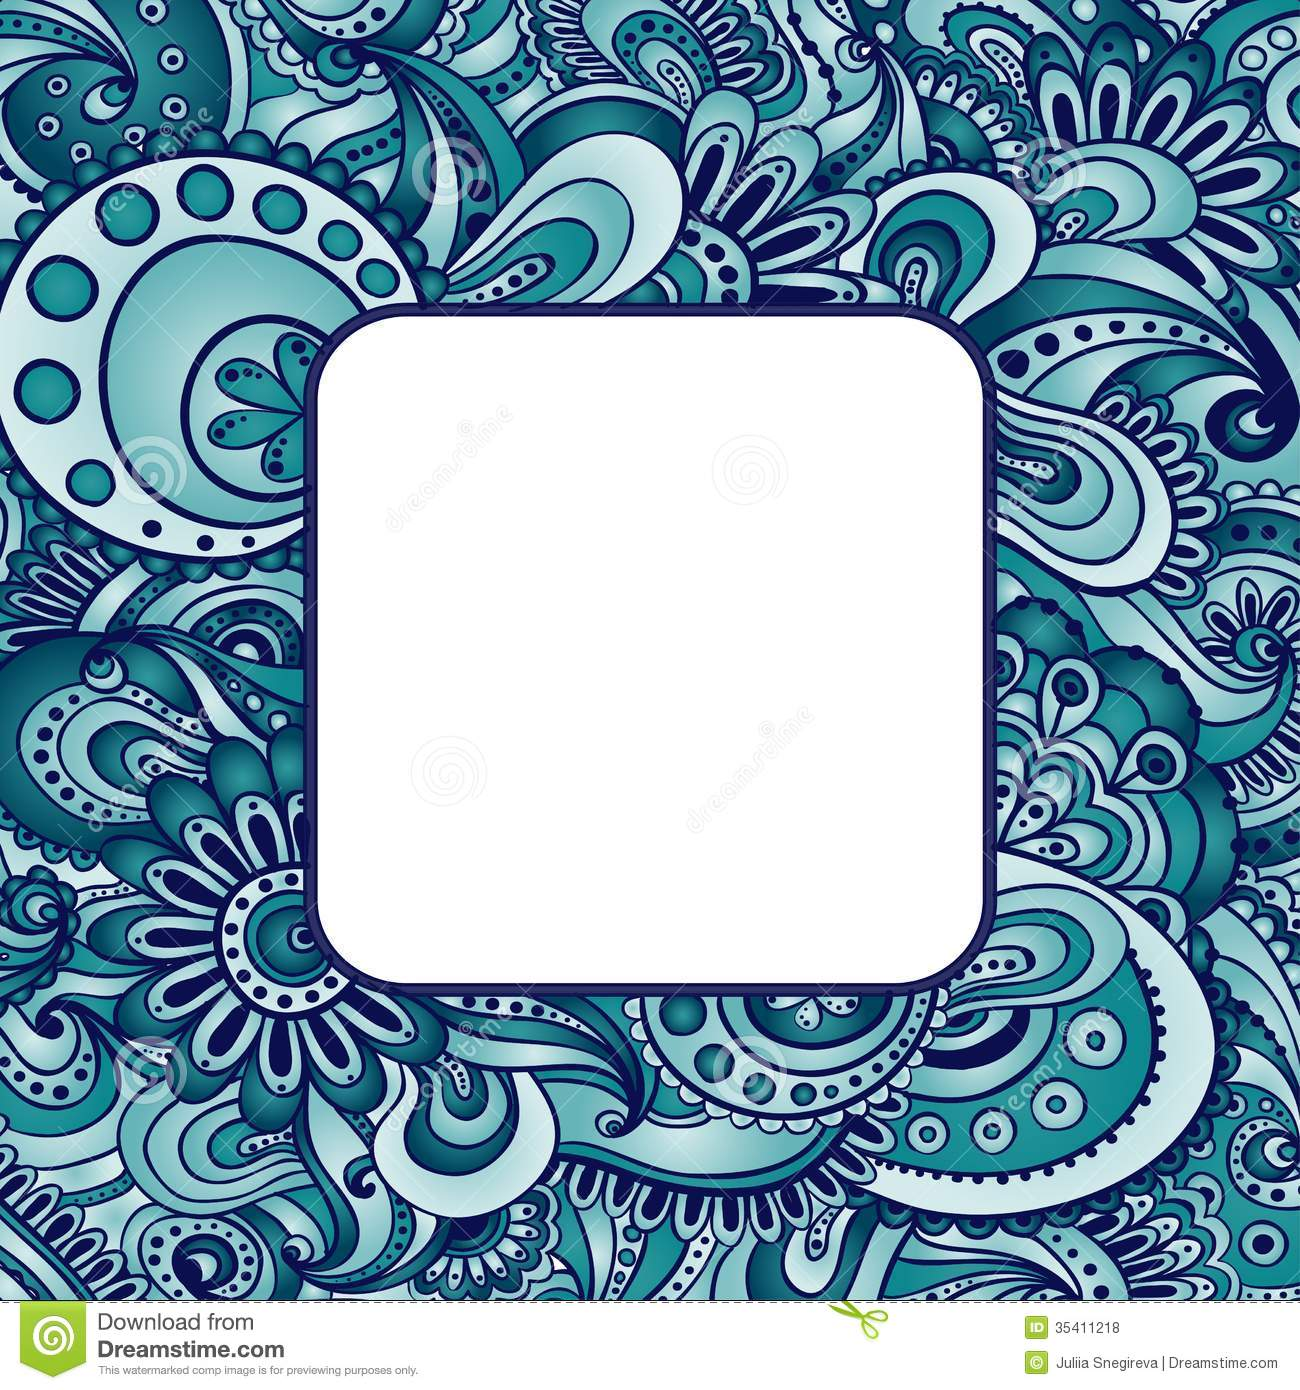 Abstract Vector Ethnic Pattern's Border. Stock Vector